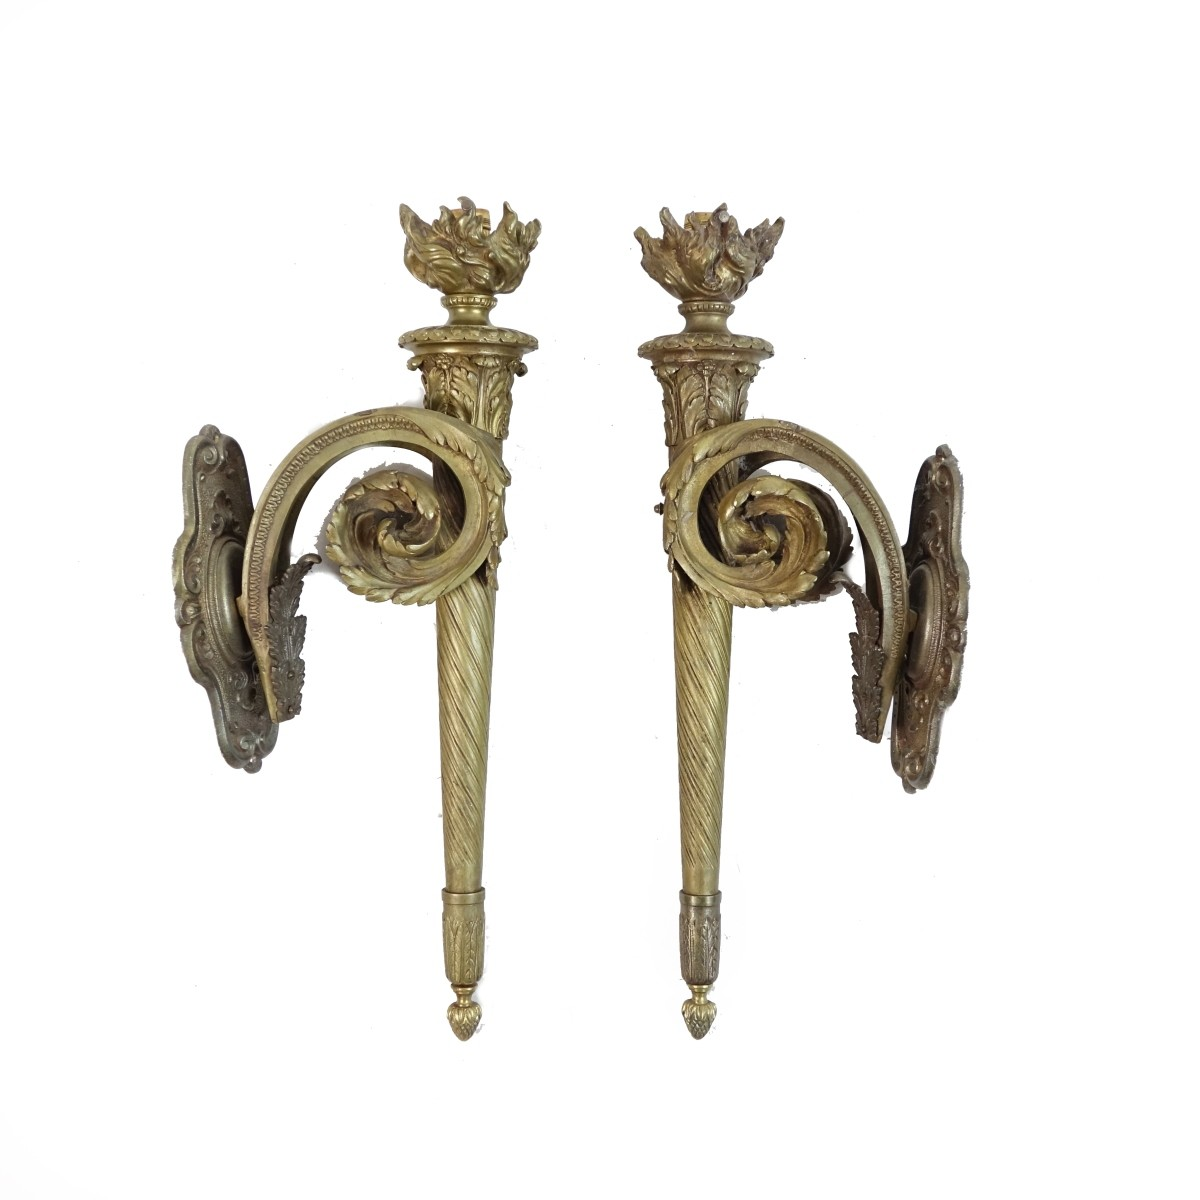 Pair of 19th C. Gilt Bronze Sconces